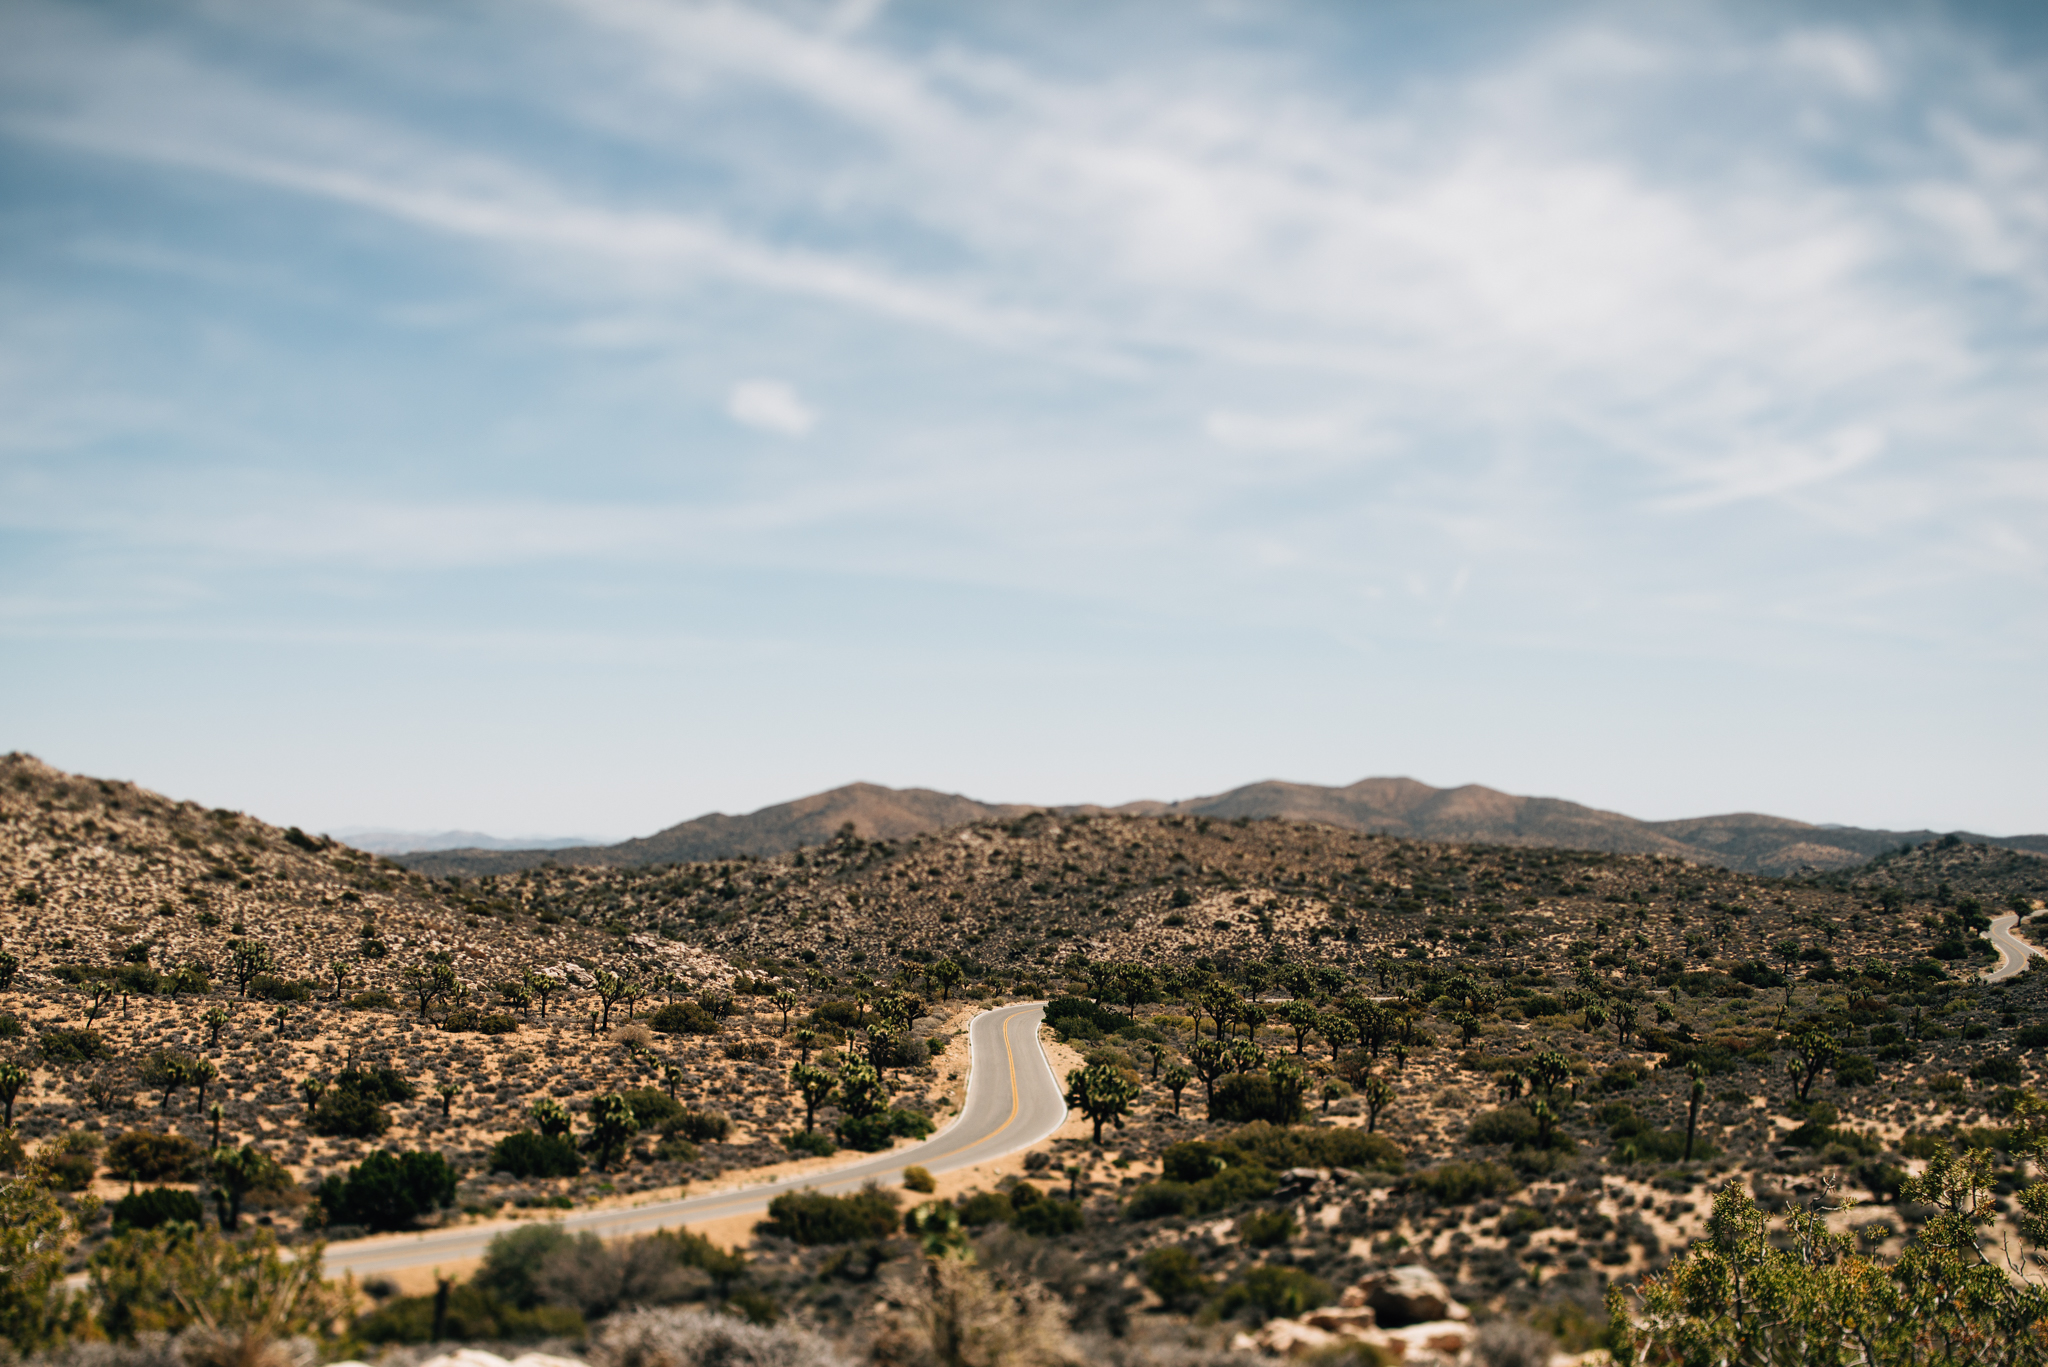 ©The Ryans Photography - Los Angeles Travel - Joshua Tree National Park-006.jpg